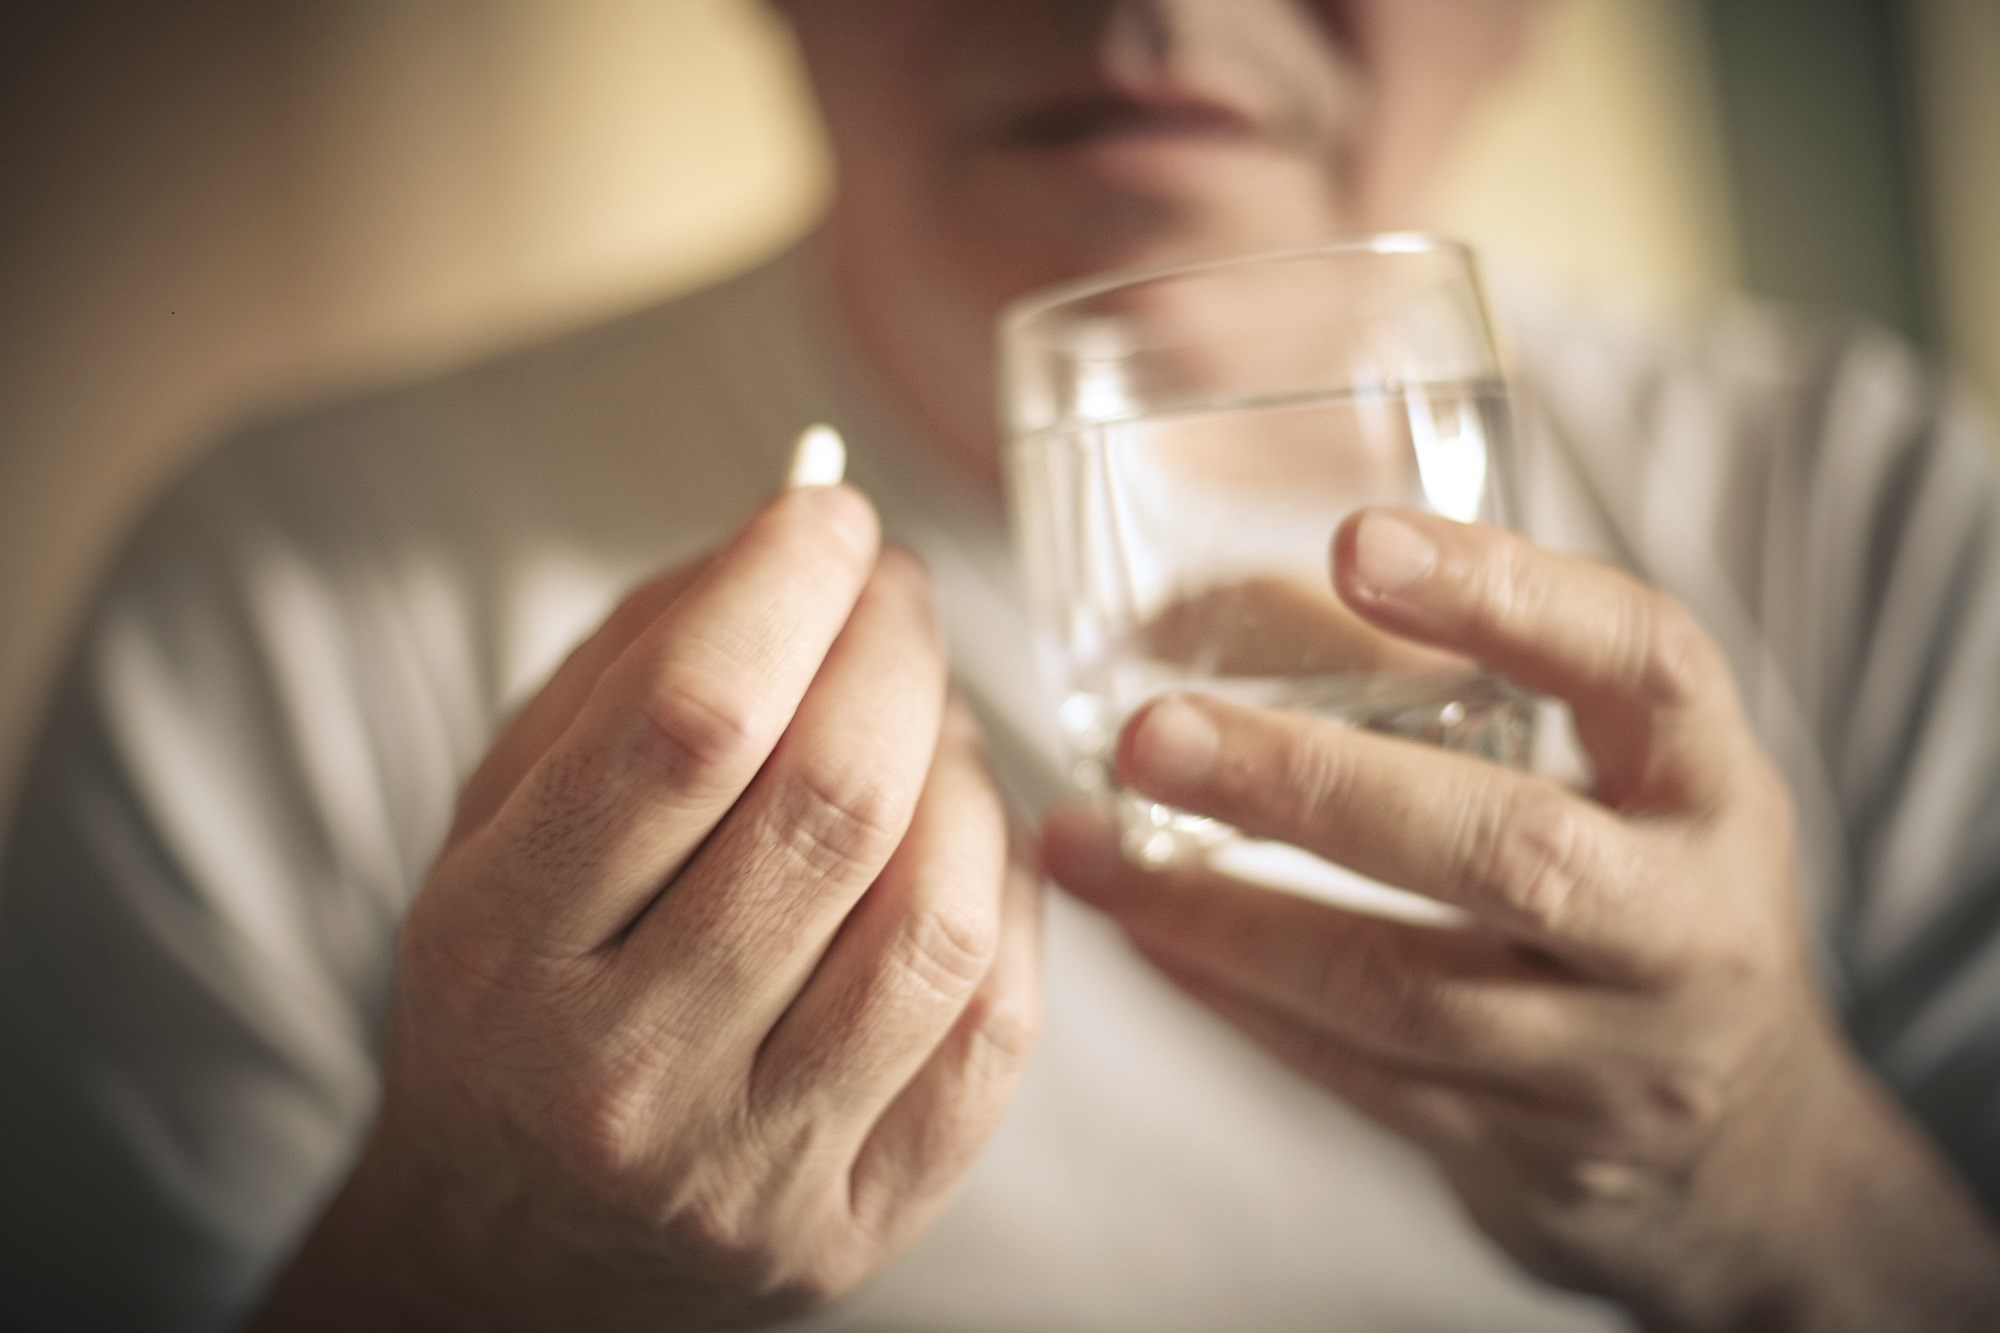 There were 4 studies that concluded that there was a significant reduction in symptoms of tardive dyskinesia after switching to clozapine.